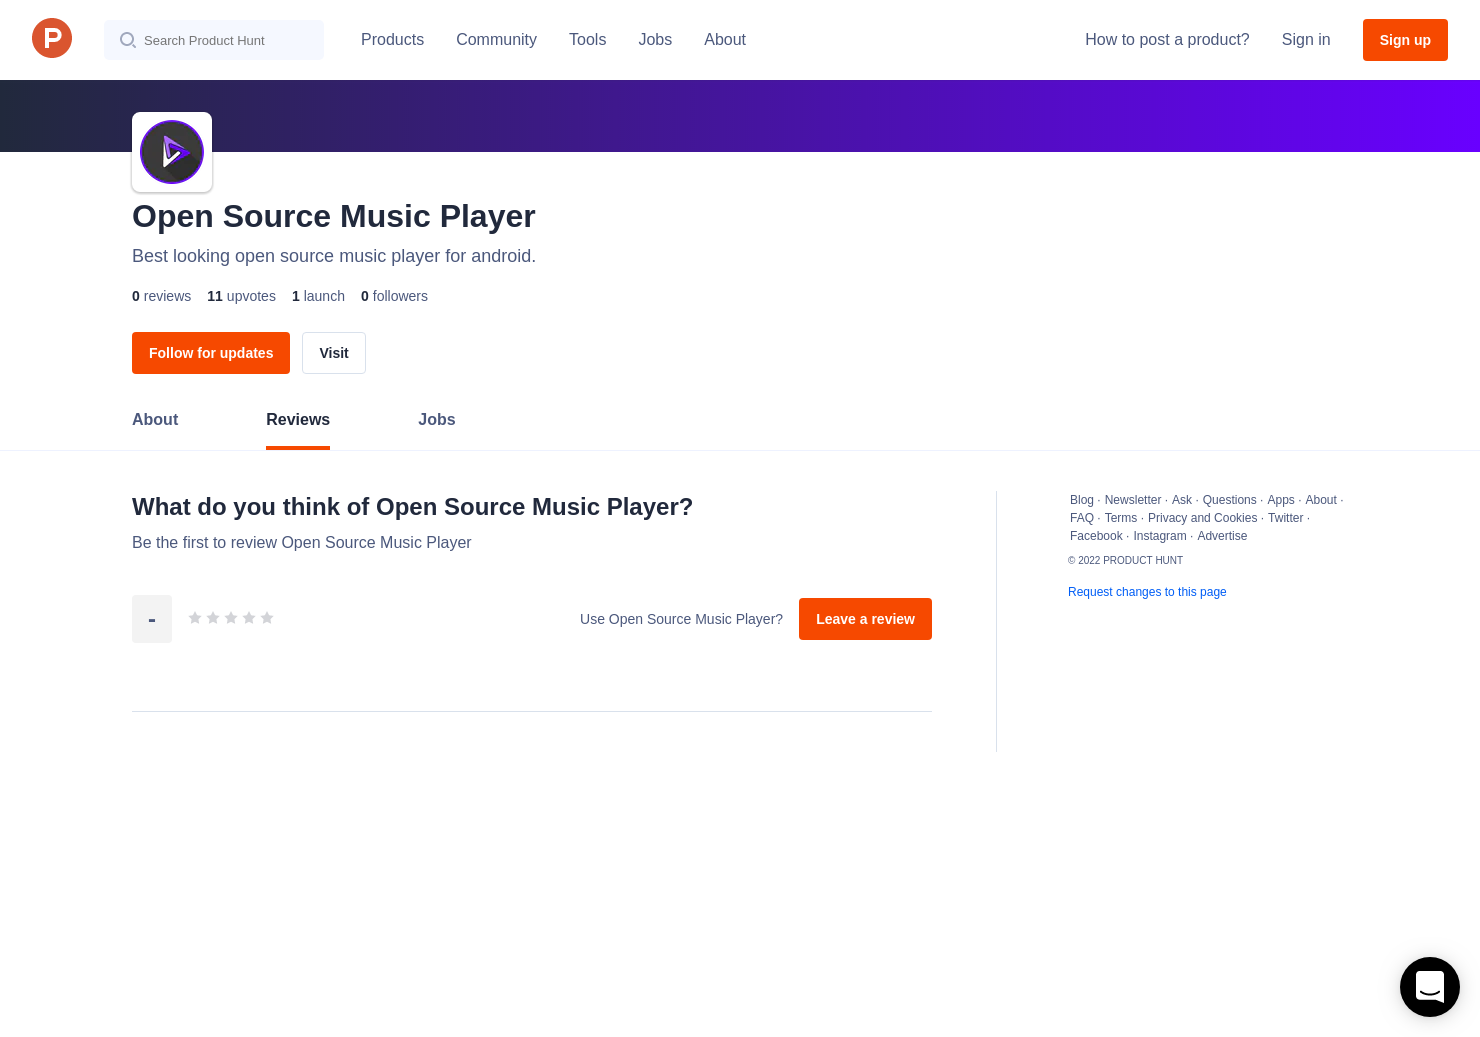 Open Source Music Player Reviews - Pros, Cons and Rating